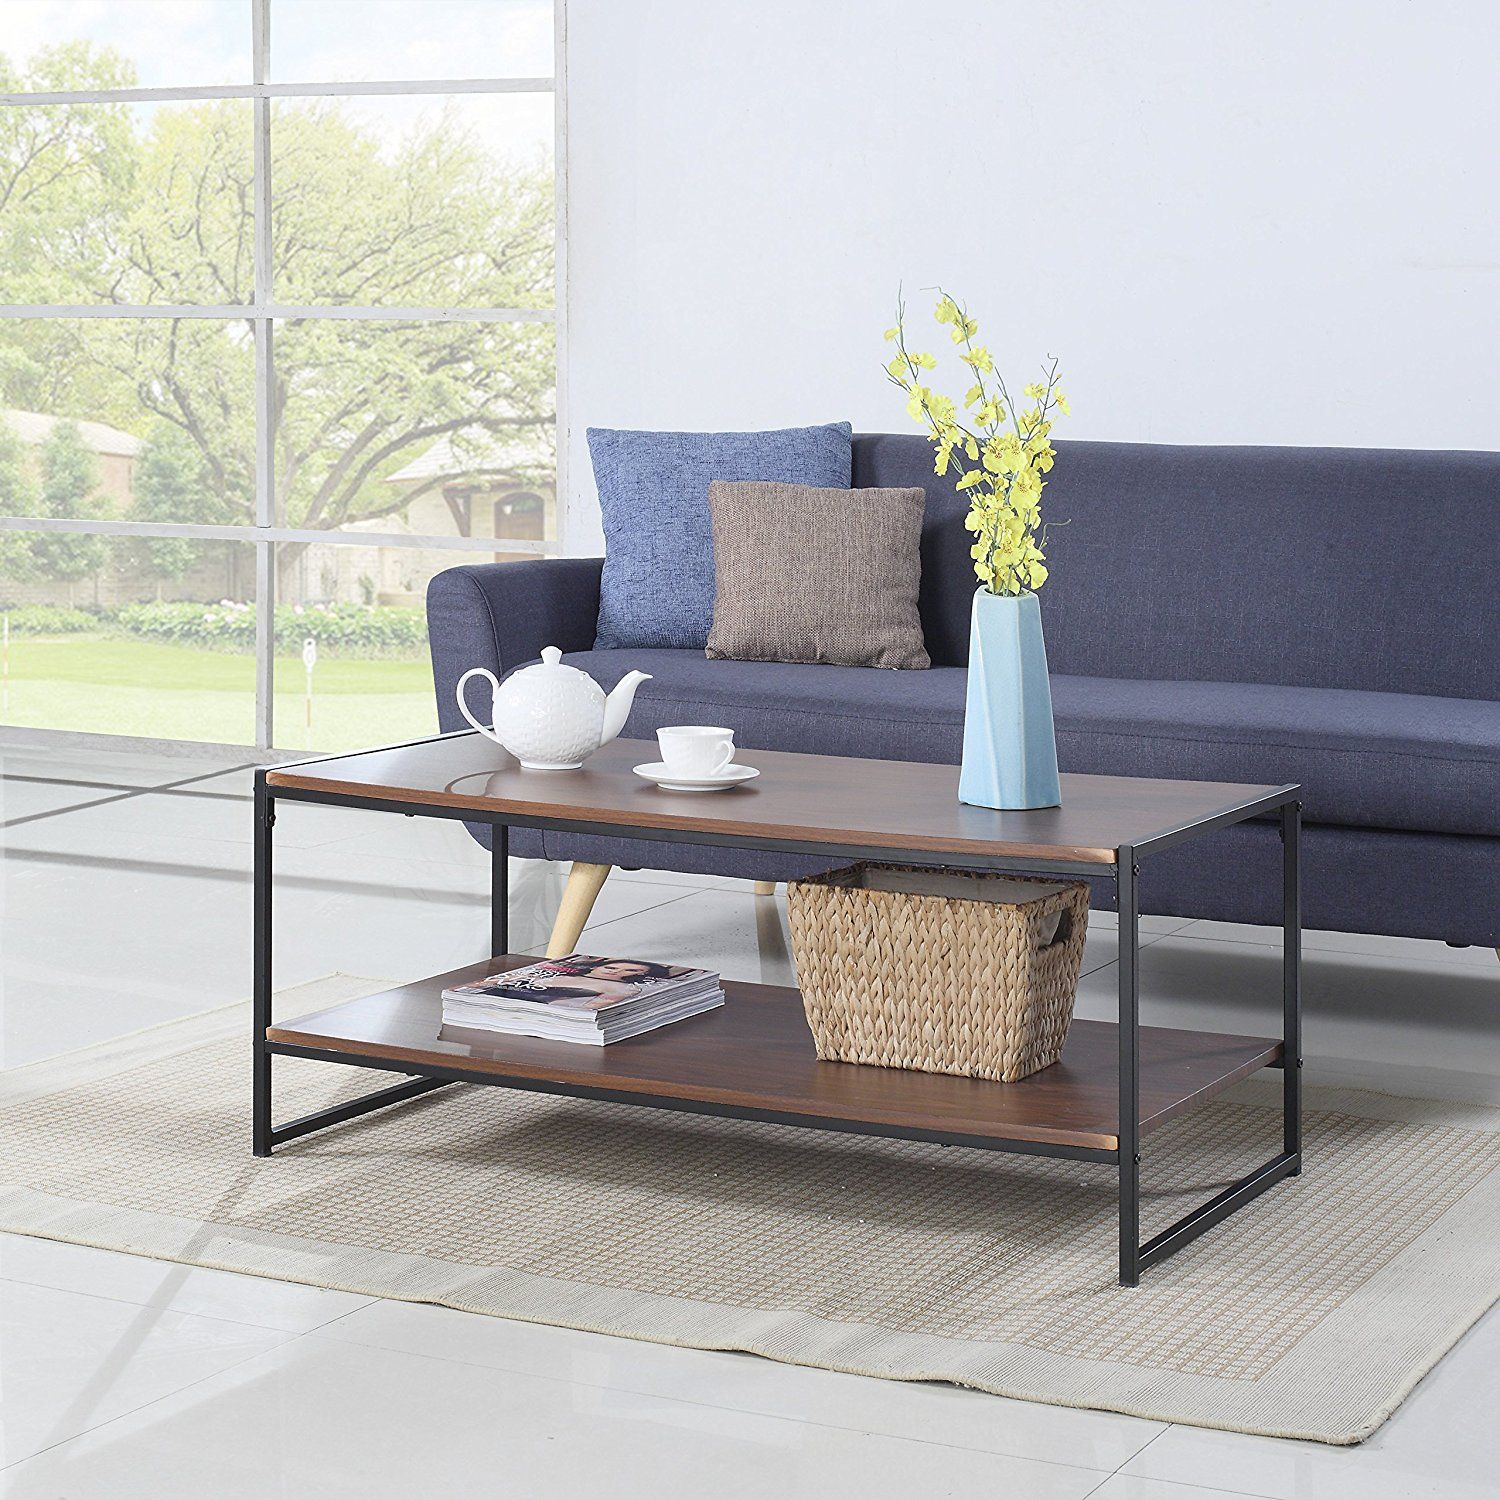 31 Cheap Coffee Tables That Cost Under 100 From Amazon